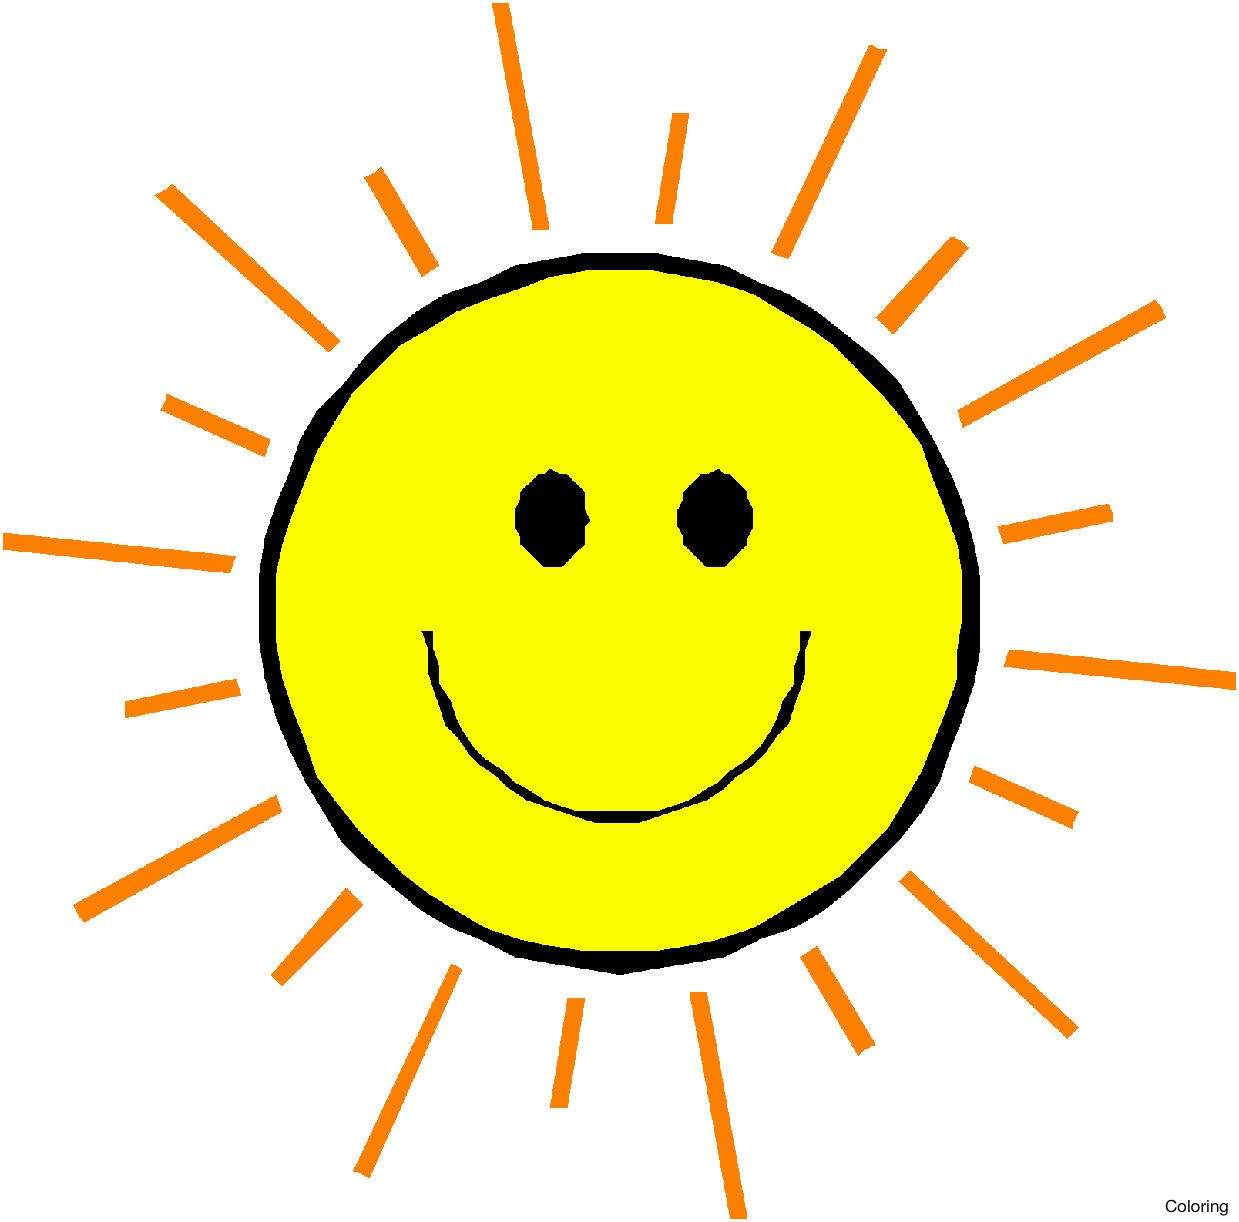 sunshine clipart at getdrawings com free for personal use sunshine rh getdrawings com sunshine clip art printable sunshine clip art animated free